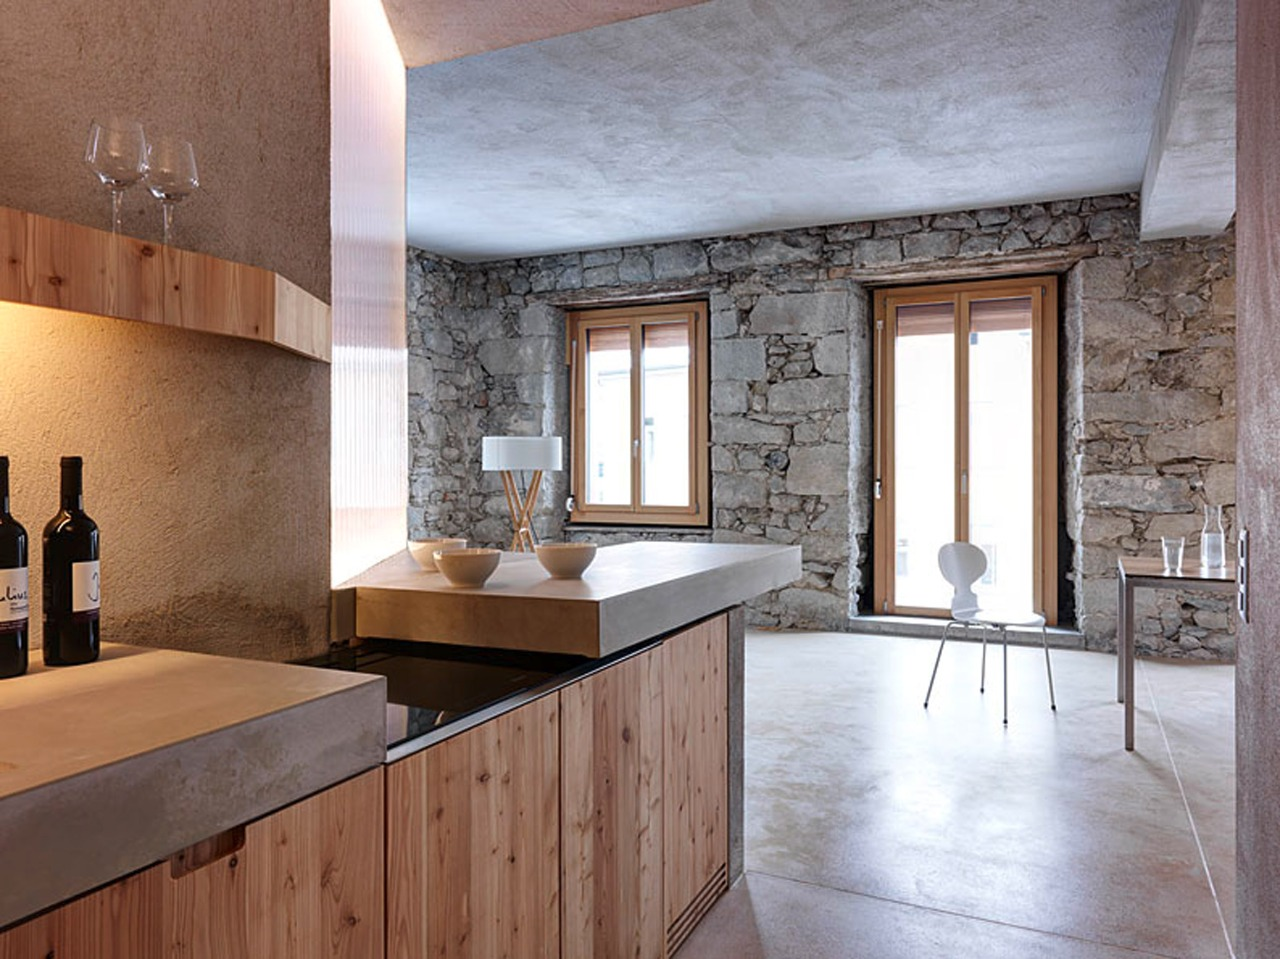 THE INFINITY LUXURIOUS NATURAL STONE